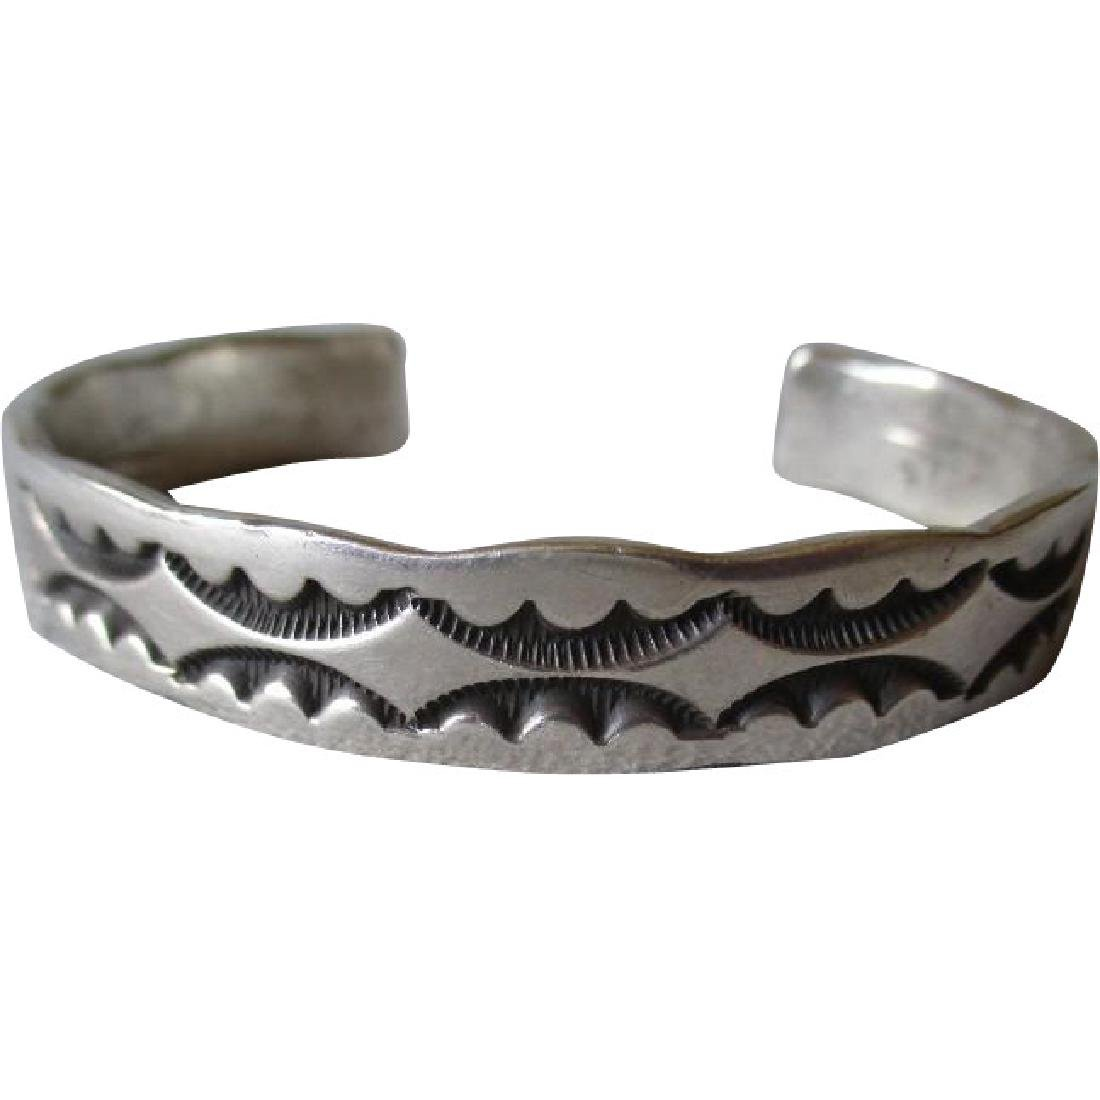 Fabulous Stamped Sterling Silver Cuff Bracelet - Signed